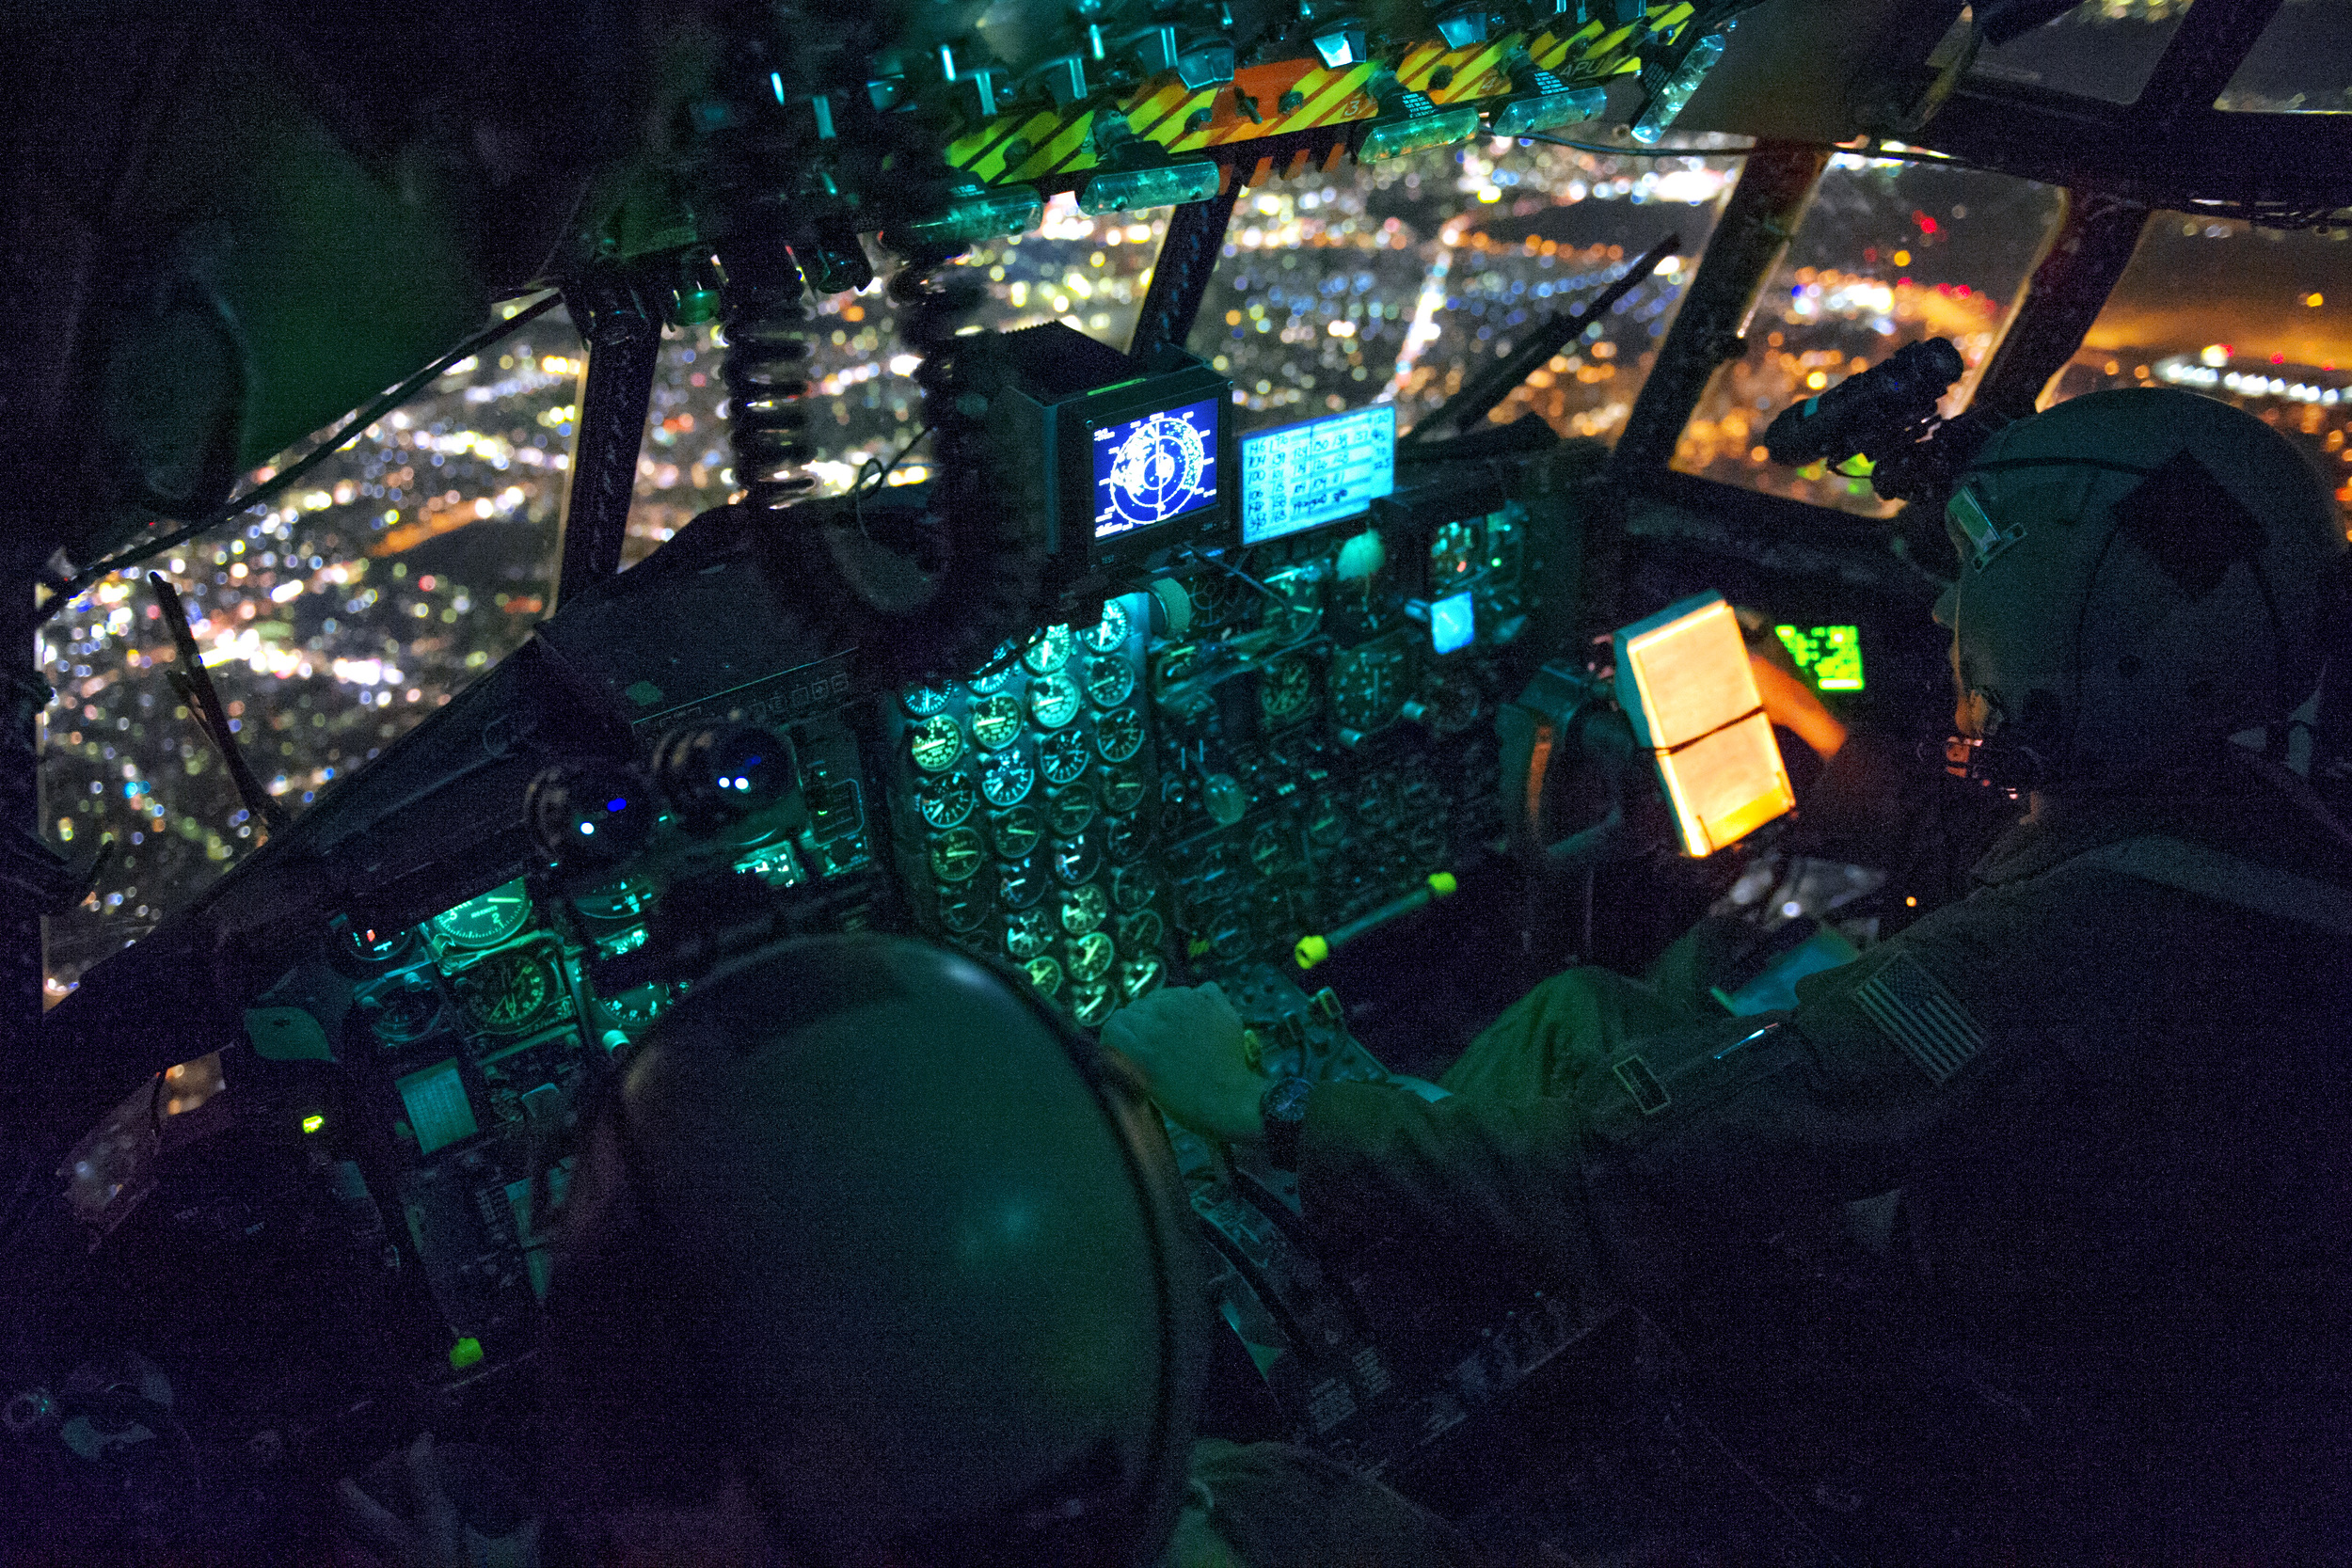 Capt. Stephen Elliot and 1st Lt. Stephen Pineo, 36th Airlift Squadron pilots, prepare to perform an assault landing during a night operations exercise over Yokota Air Base, Japan, Oct. 14, 2015. The training enhanced the pilots' ability to operate in the dark. (U.S. Air Force photo by Airman 1st Class Delano Scott/Released)